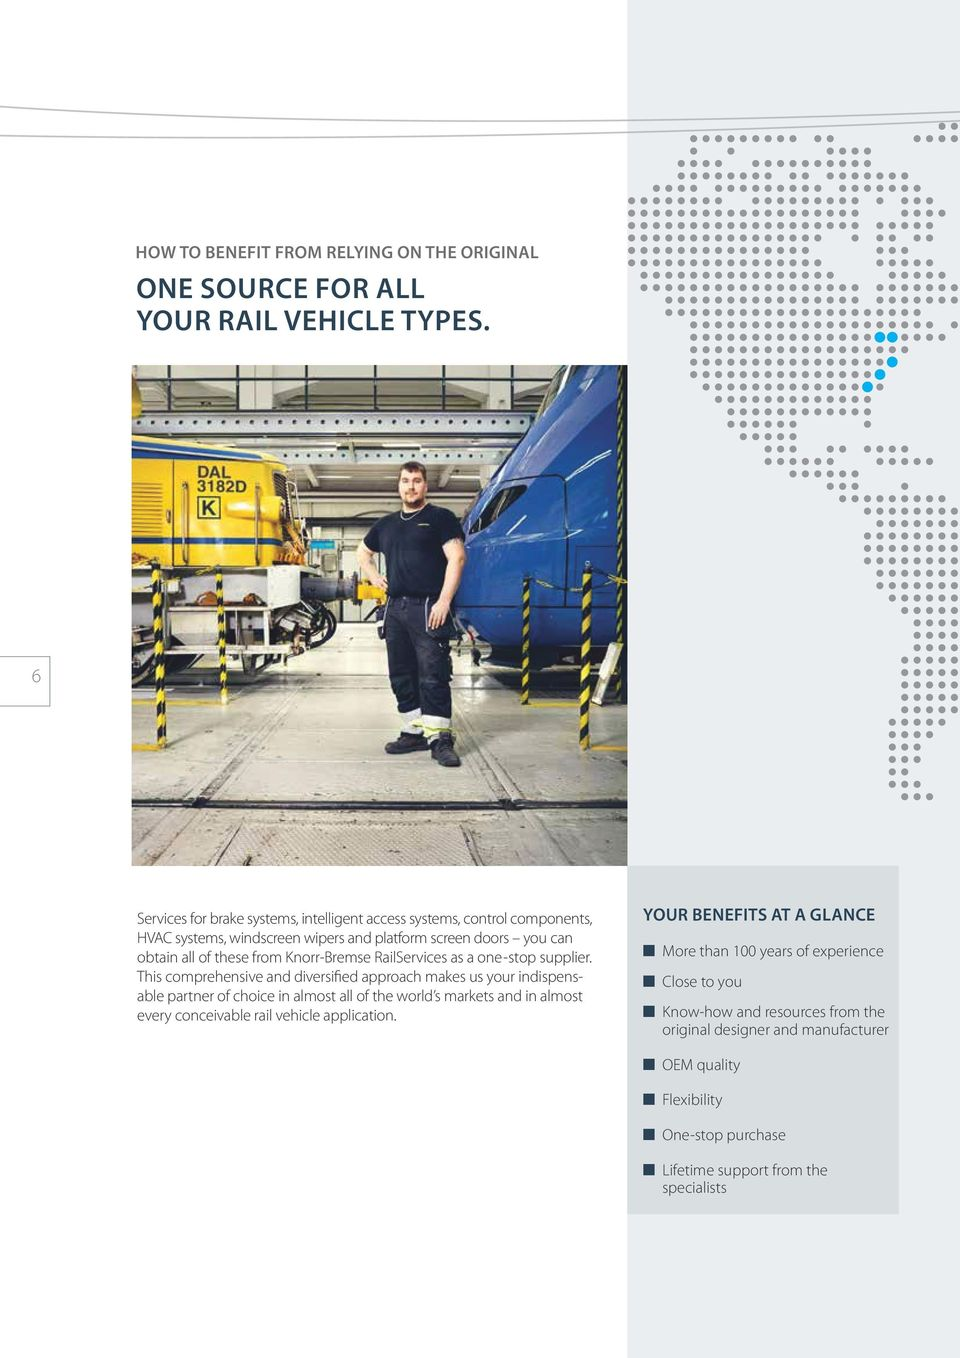 Knorr-Bremse RailServices as a one-stop supplier.